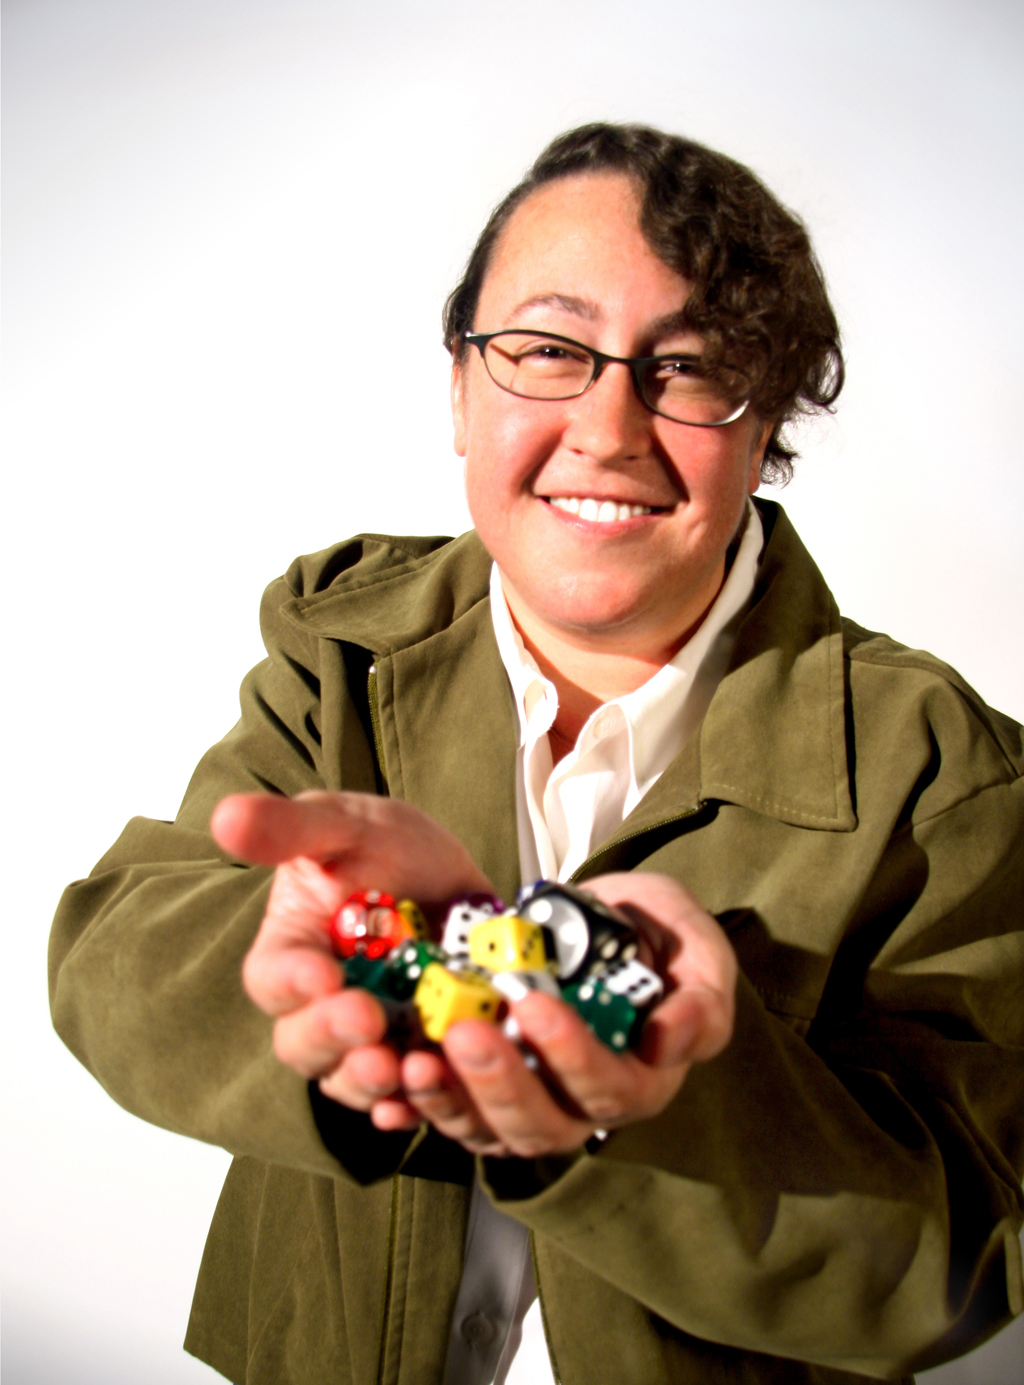 Photo courtesy of USC News  Game on · Tracy Fullerton, the director of the USC Games Program, says her goal is to create a gender-balanced environment in game development.